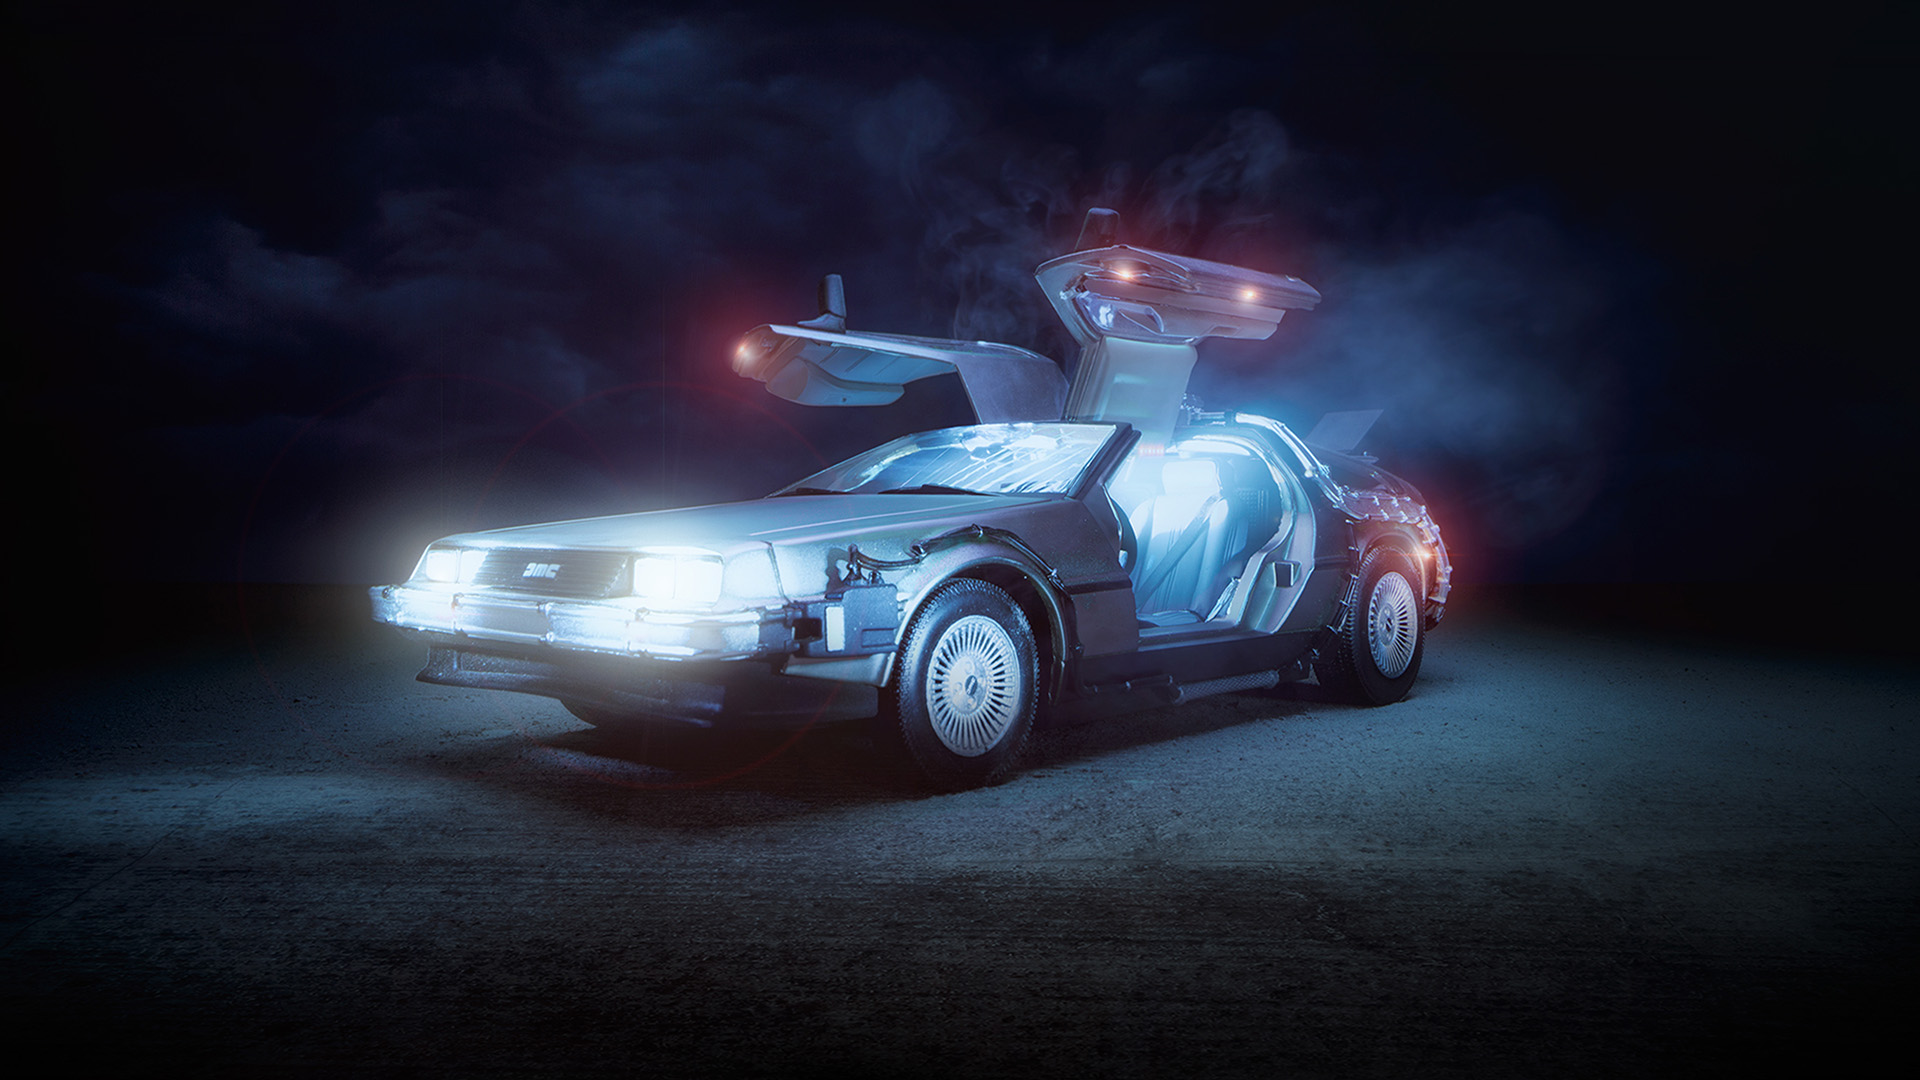 Bj67 Art Back Tothe Future Car Film Wallpaper